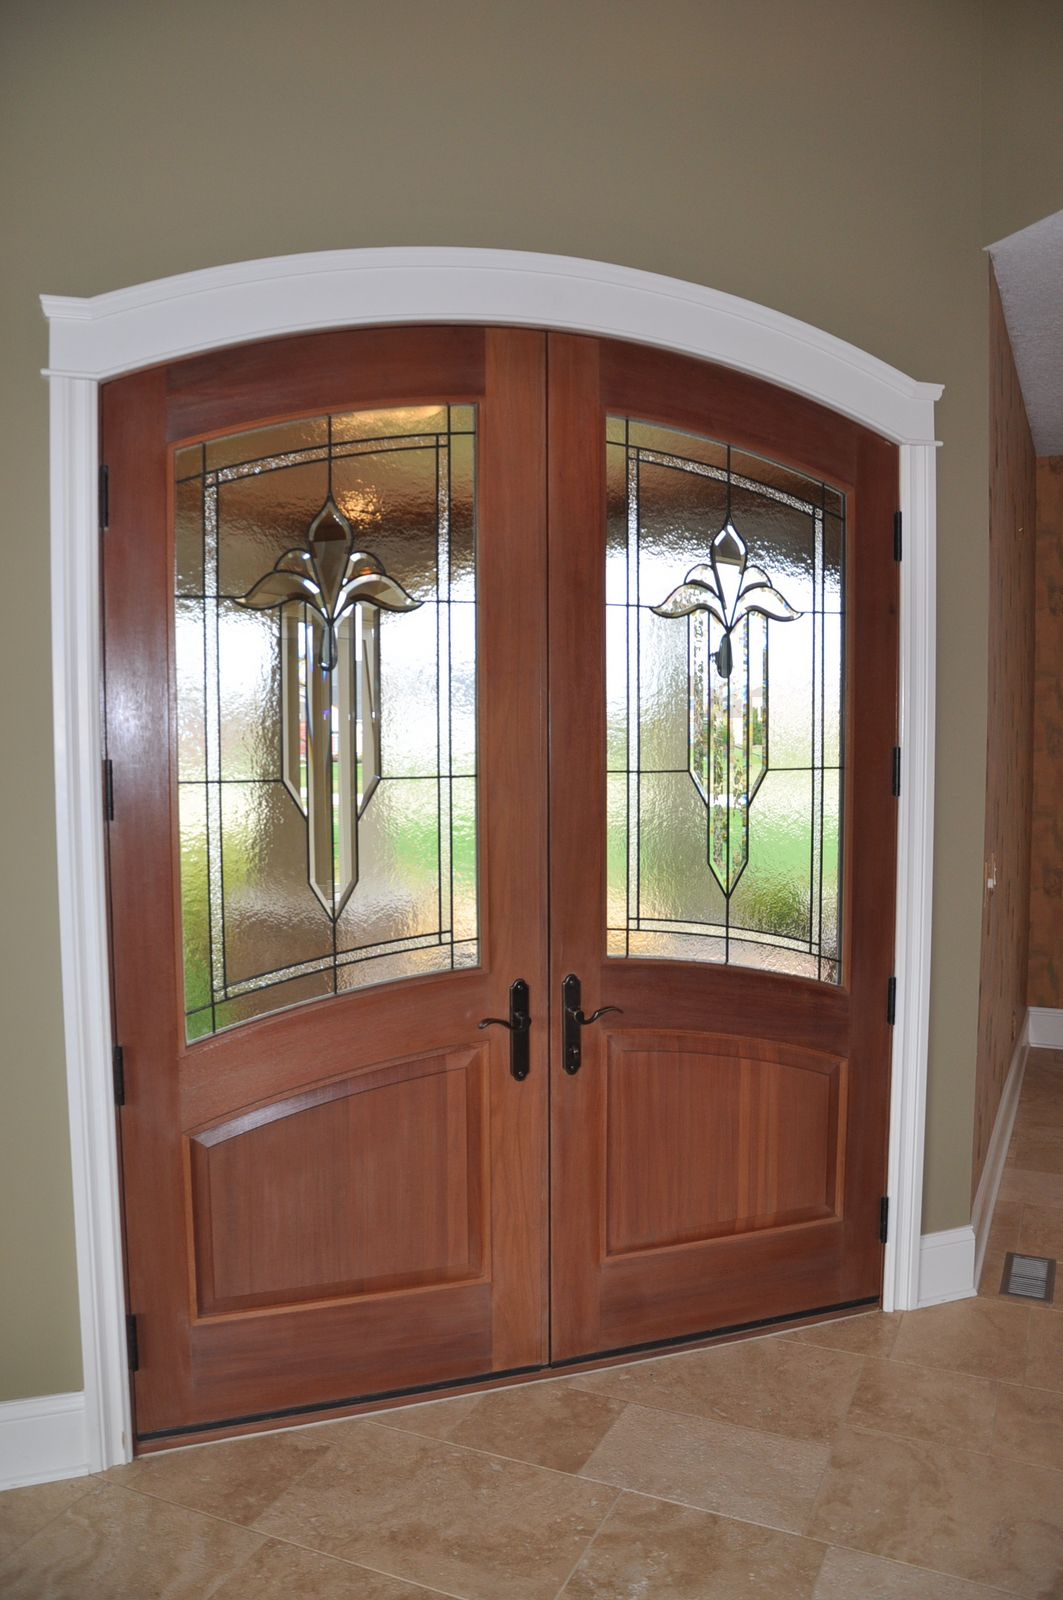 My home tour evolution of style for Double front entry doors